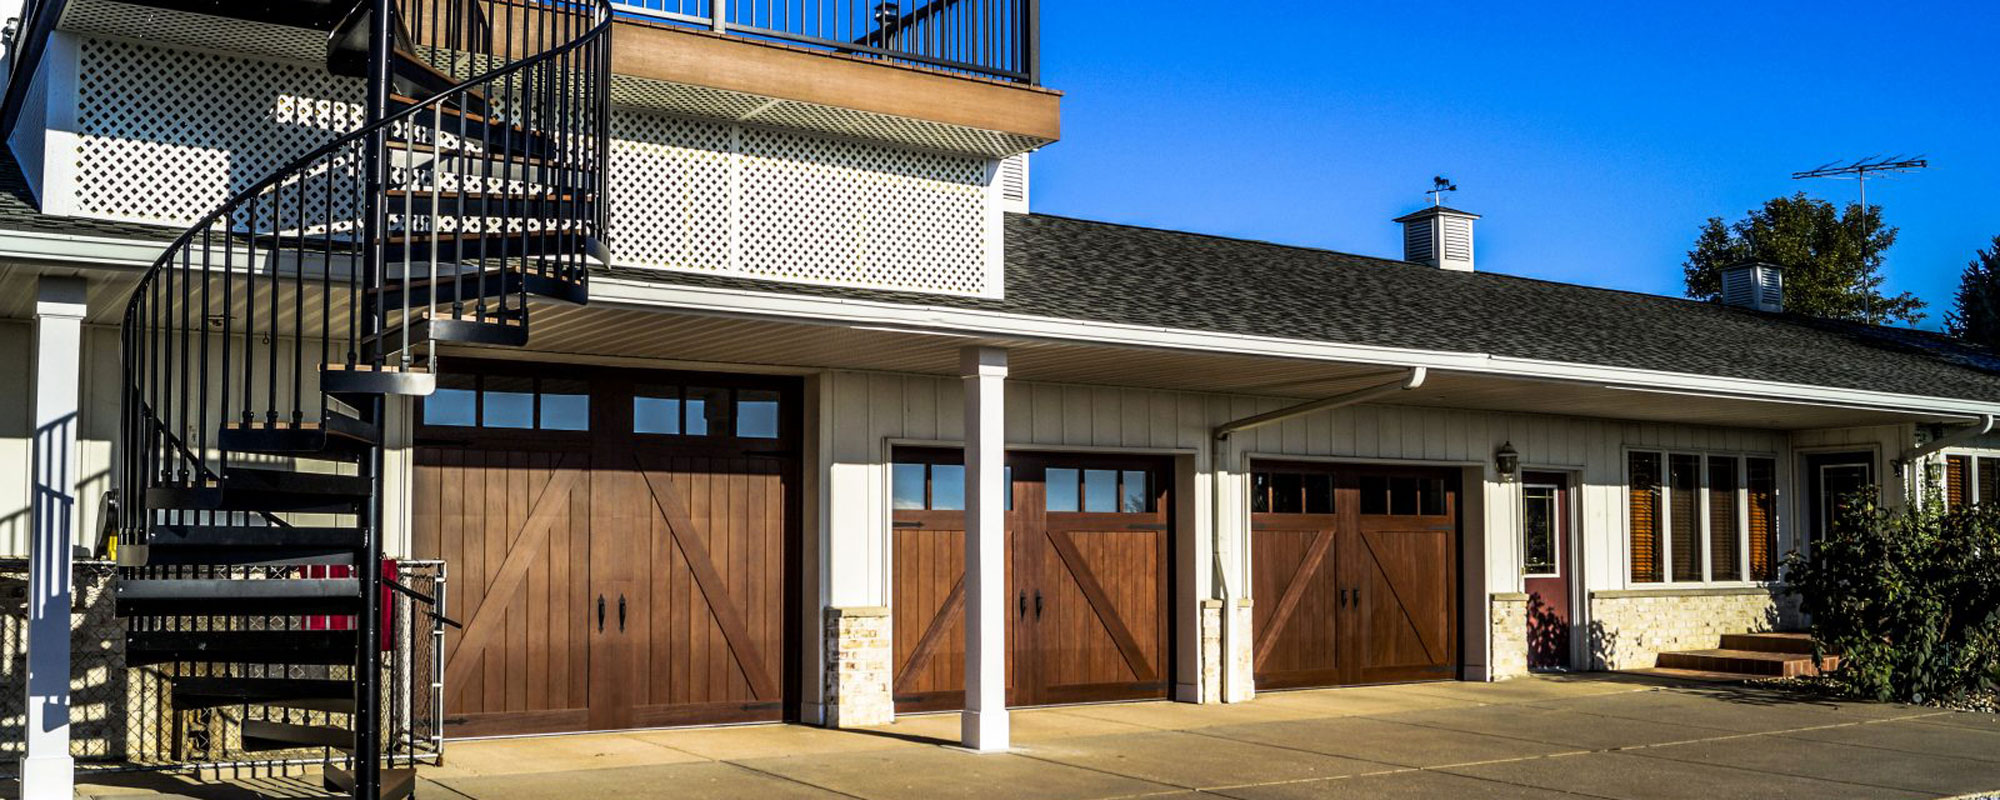 Ranch-style overhead doors installed in home